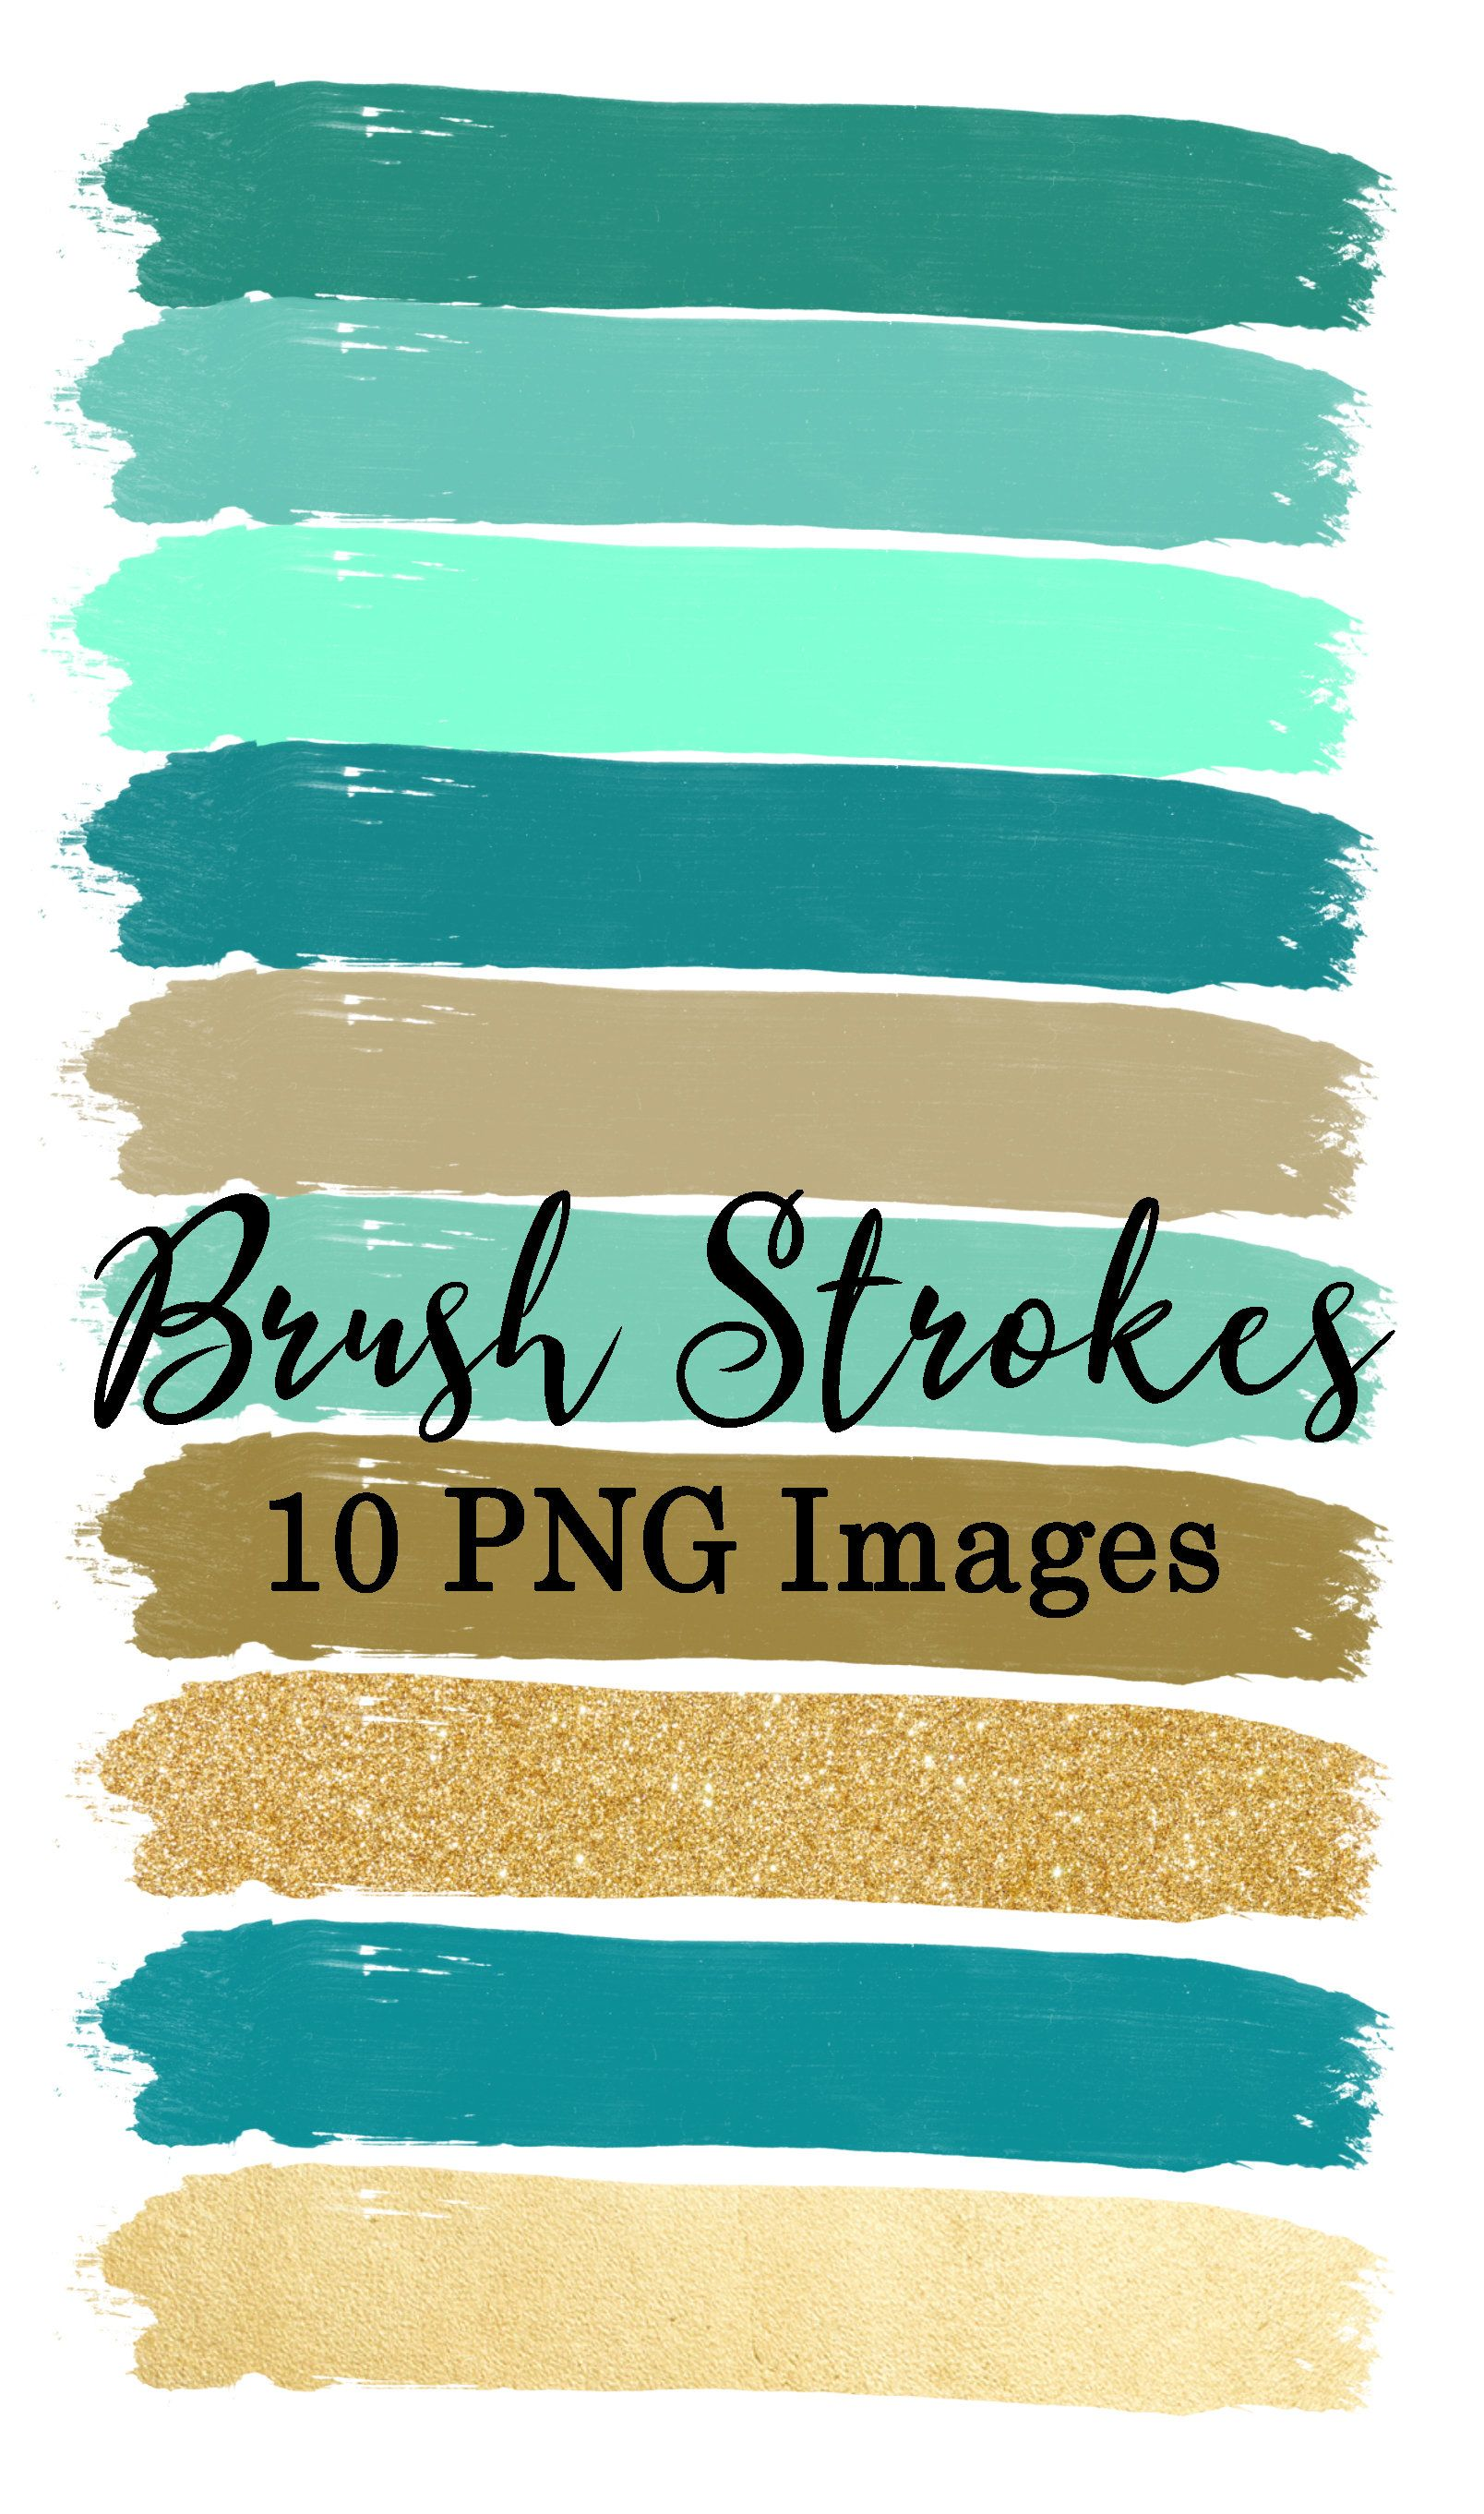 Brush Strokes Clip Art 15 Hand Painted Mint Green Gold Etsy In 2020 Brush Strokes Clip Art Green And Gold